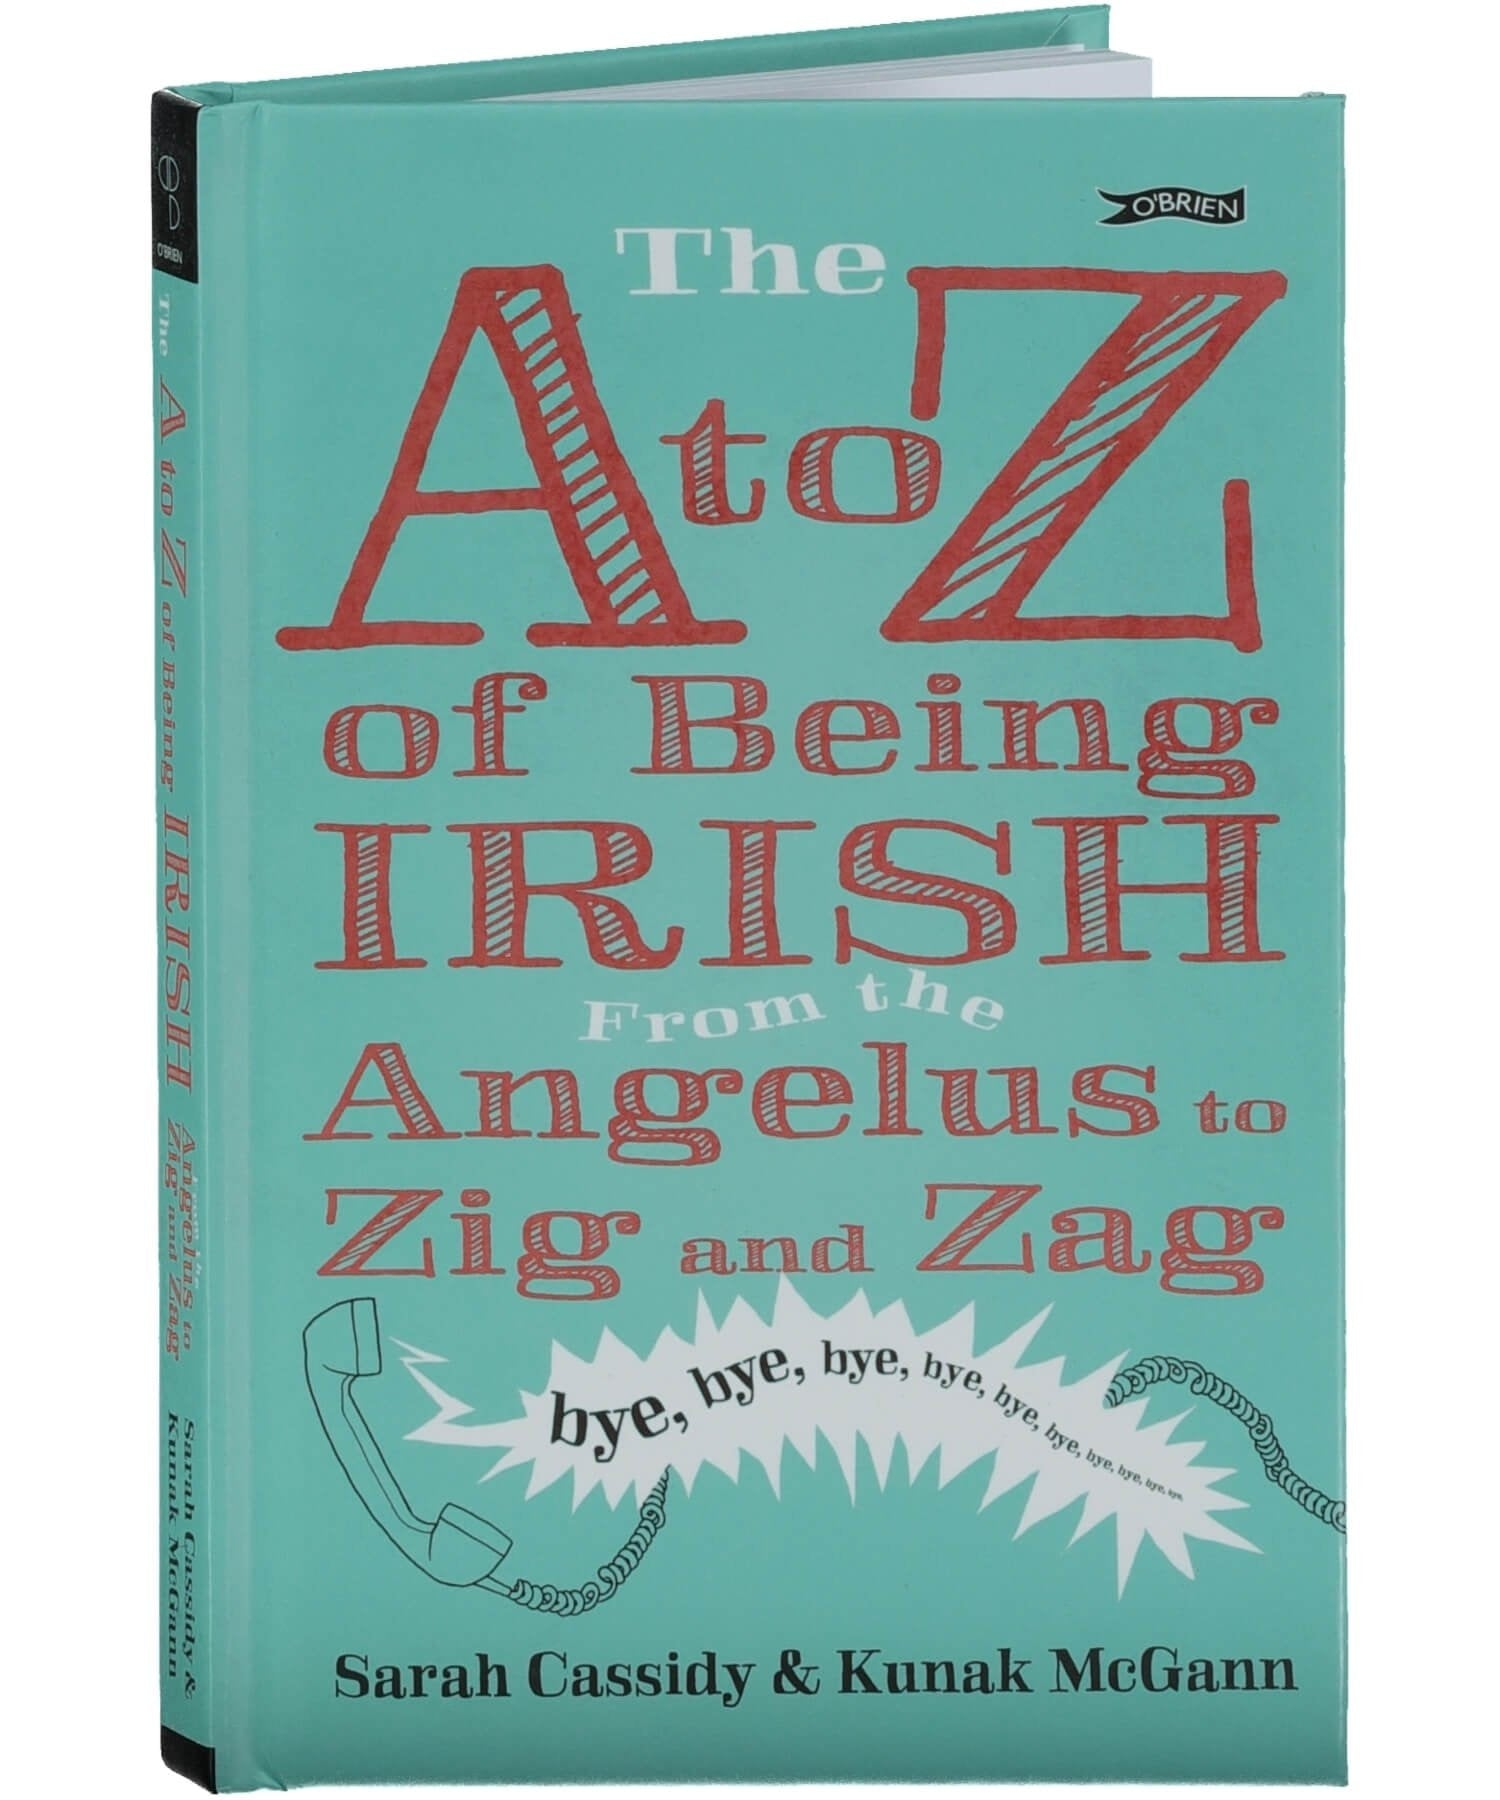 The A to Z of Being Irish - [The O'Brien Press] - Books & Stationery - Irish Gifts